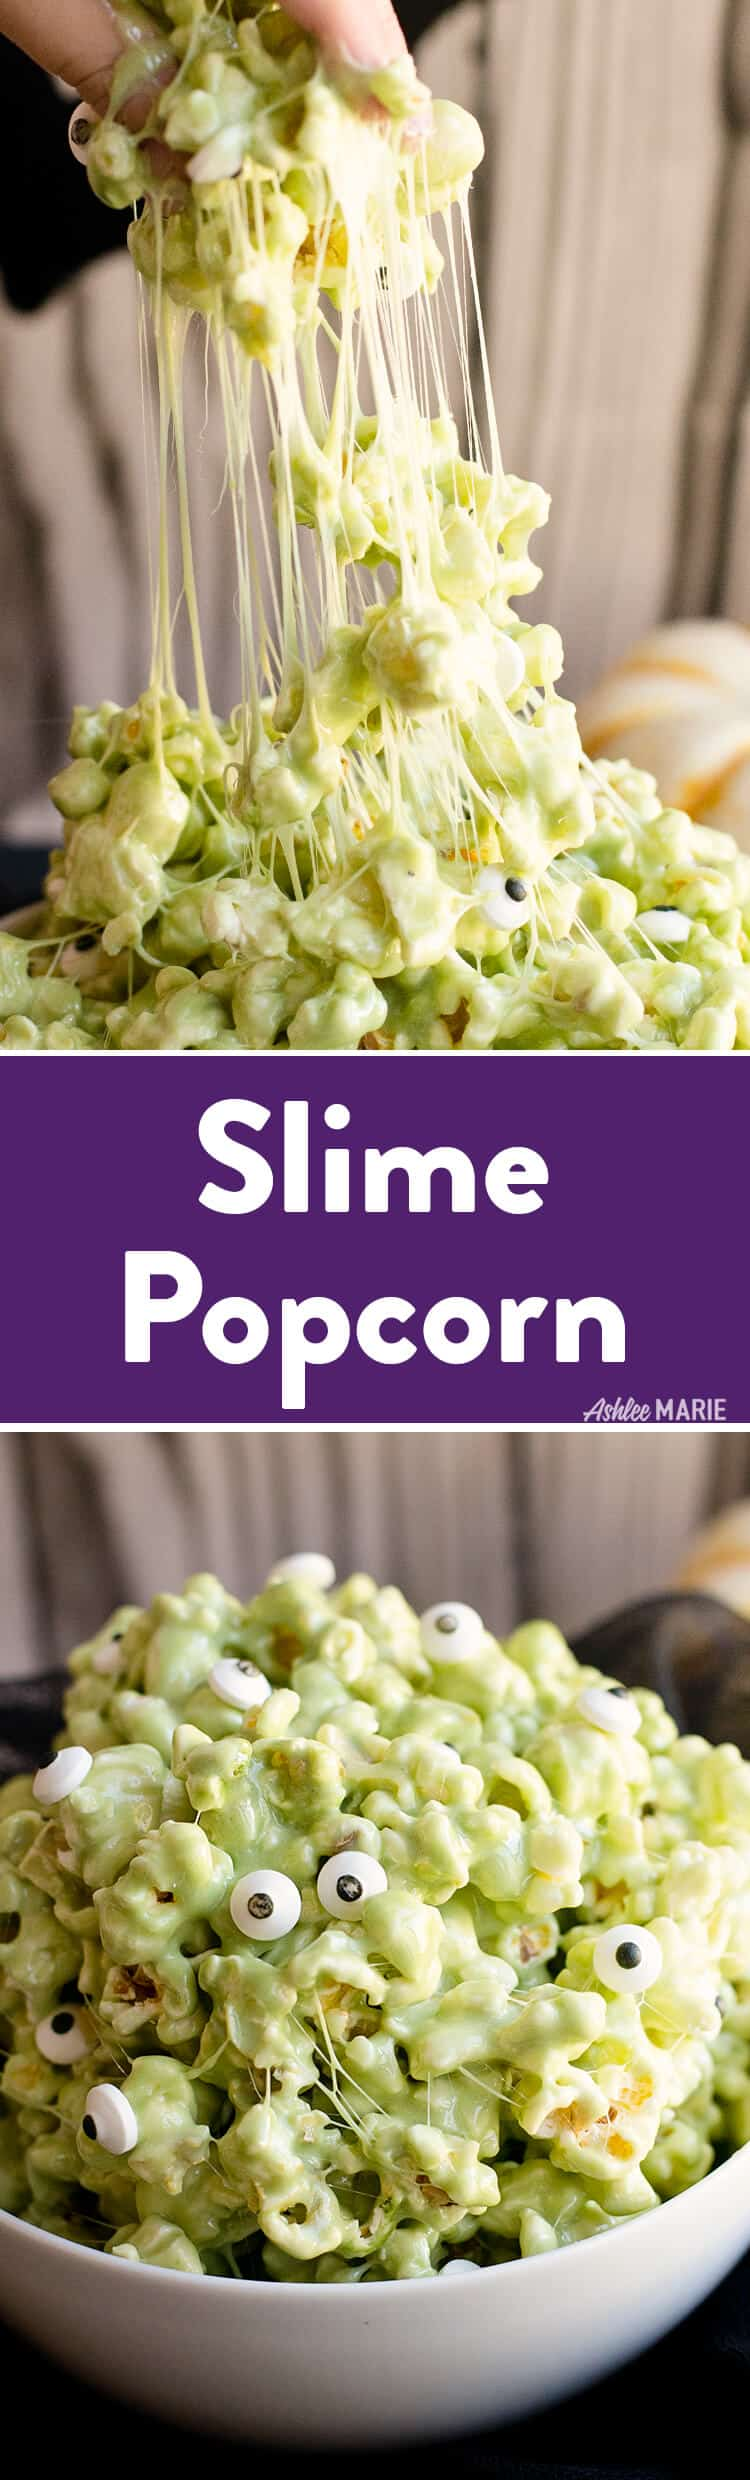 Marshmallow Slime Popcorn | Ashlee Marie - real fun with